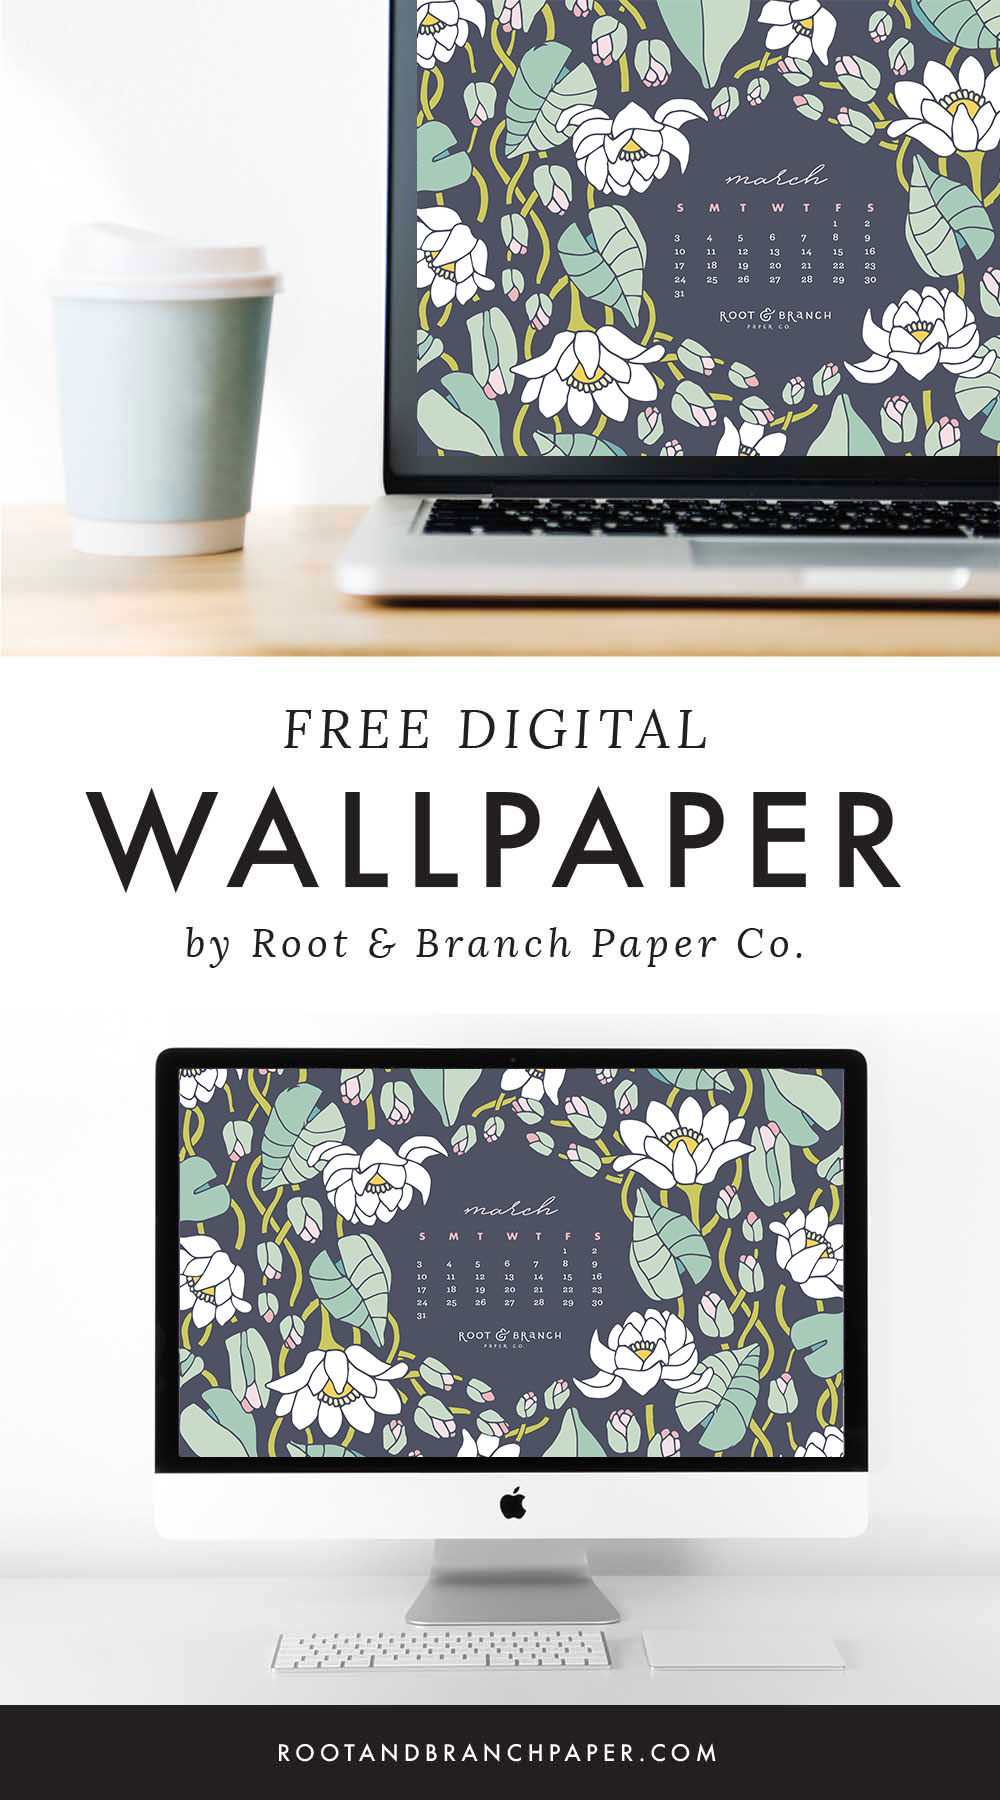 March 2019 Calendar Wallpaper, Free Digital Desktop Wallpaper, Illustrated Floral Desktop Calendar by Root & Branch Paper Co.